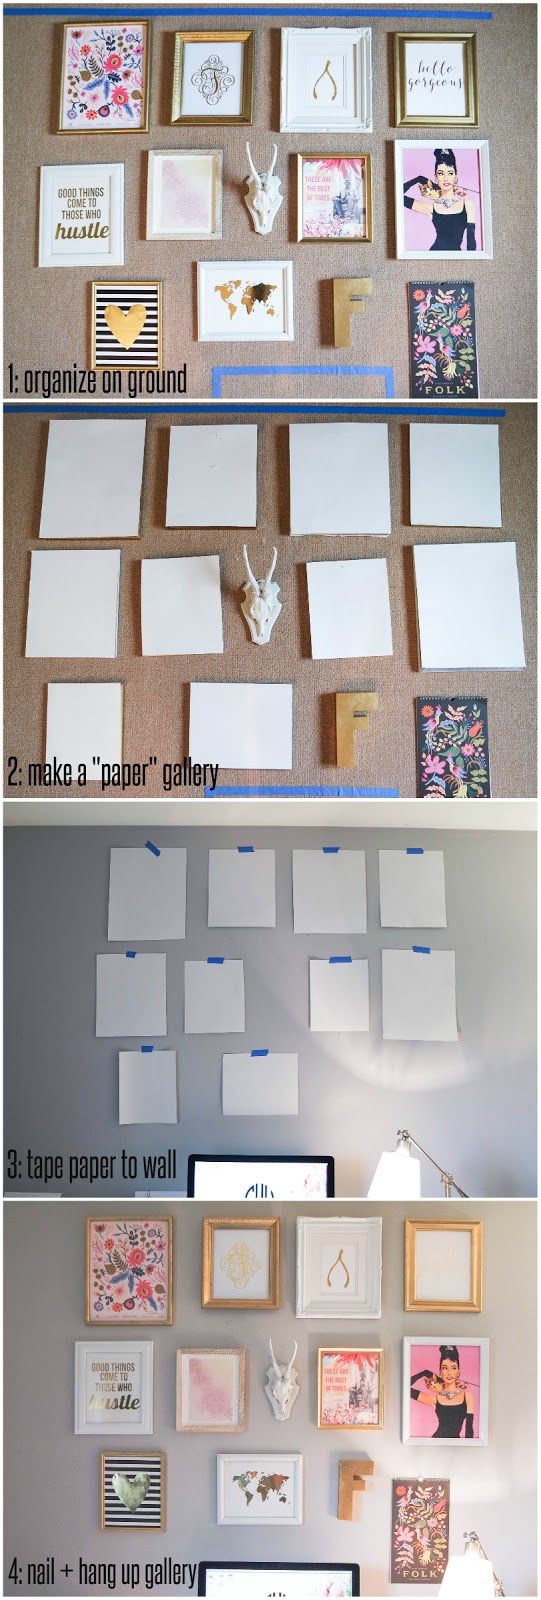 how to hang up a gallery wall